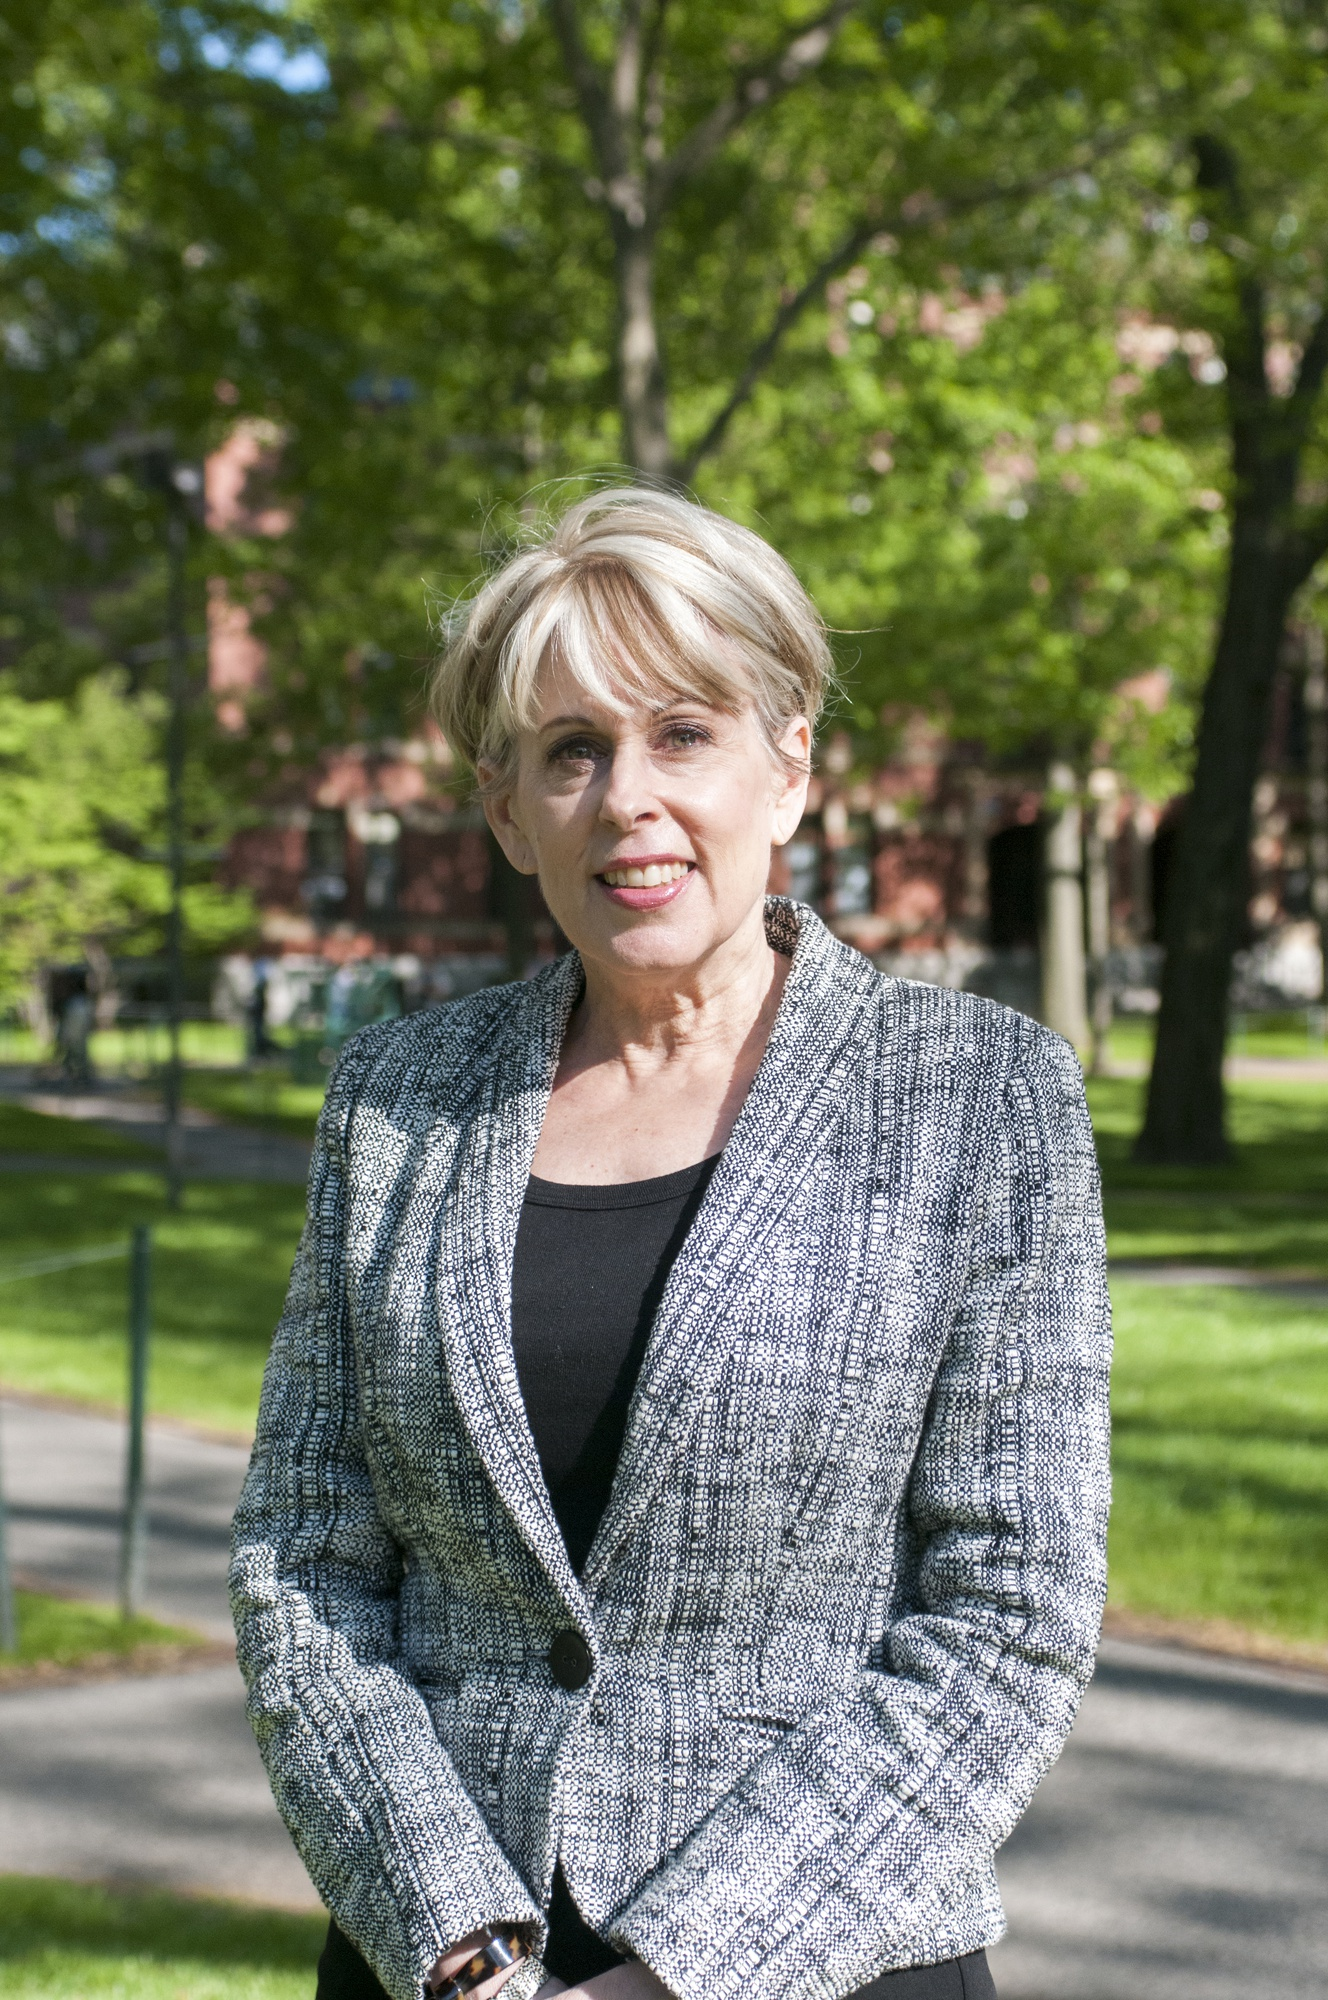 Vice President for Alumni Affairs and Development Tamara E. Rogers '74 leads Harvard's sizable and influential development arm.